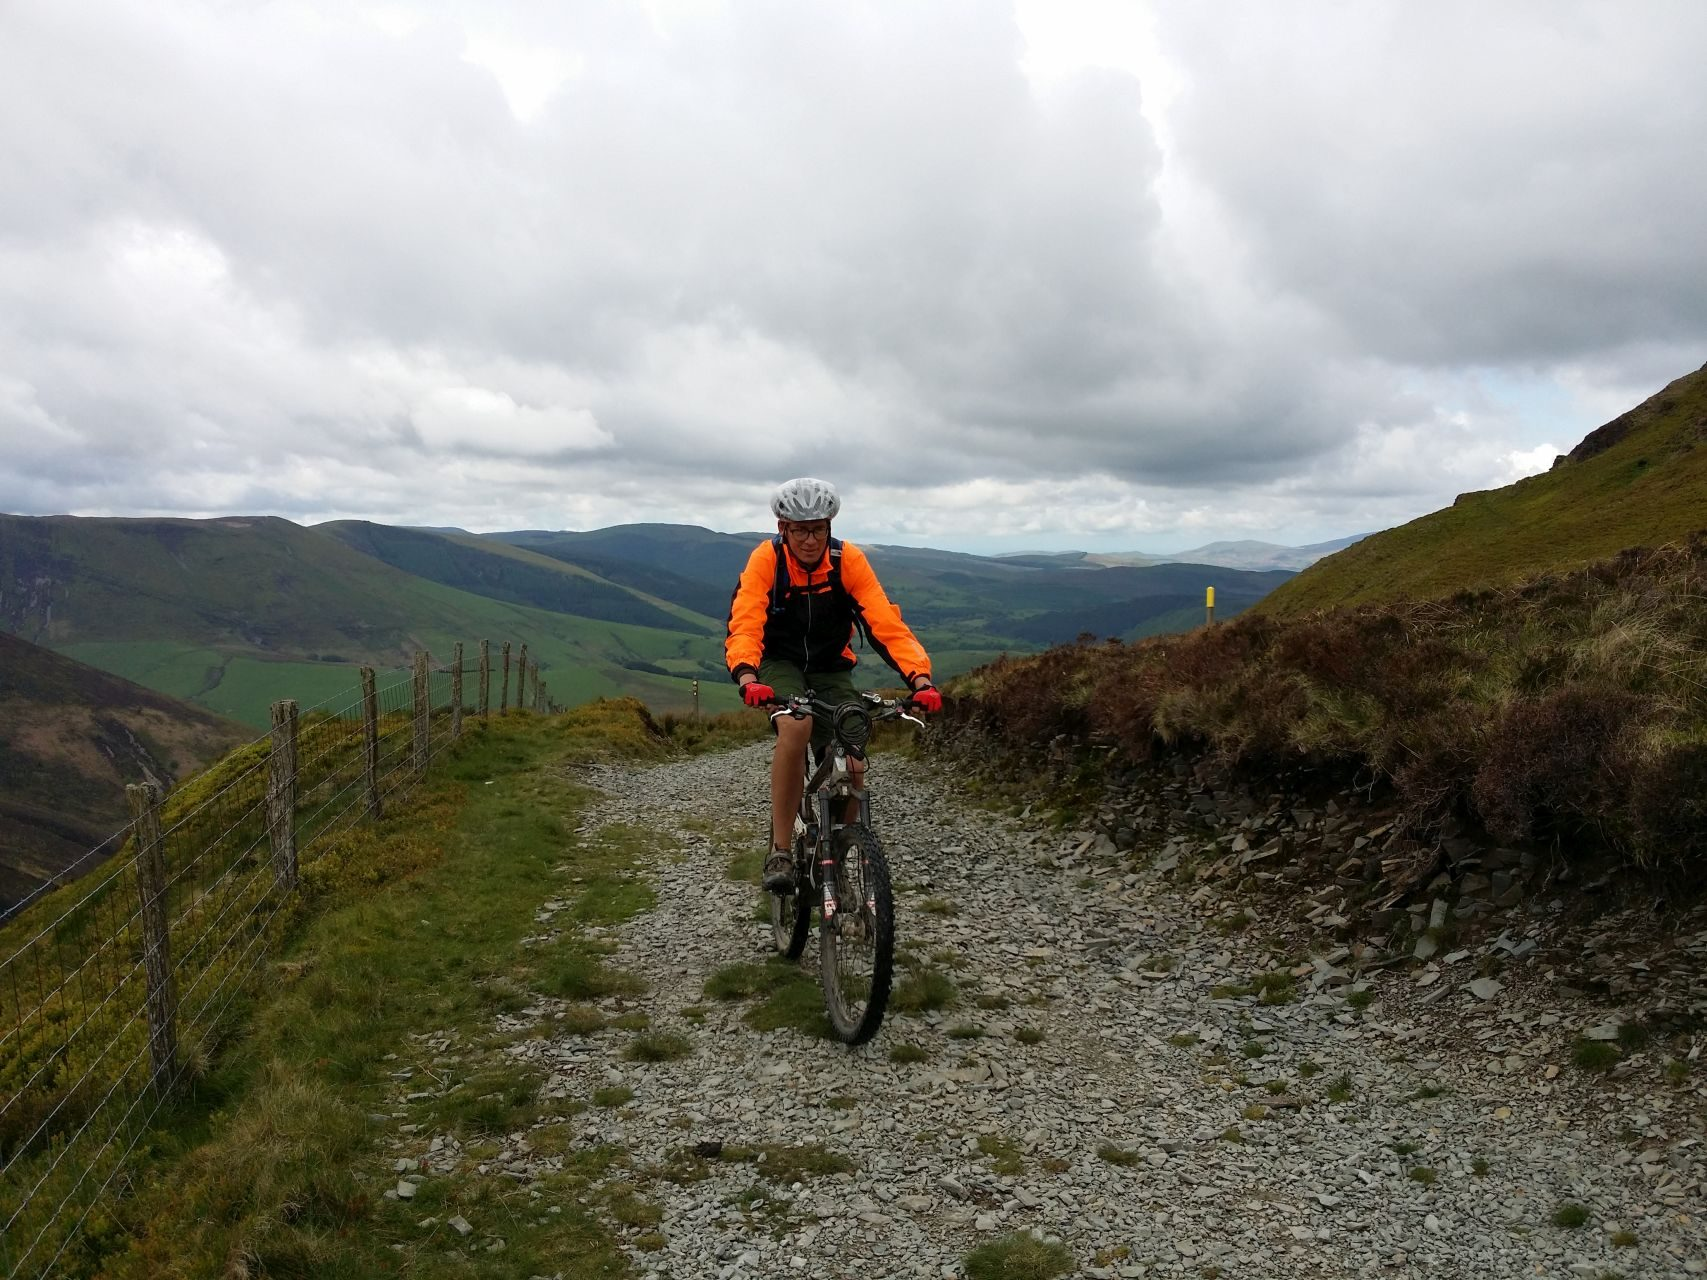 Day 4 - Paul riding up beneath slopes of Foel Fadian